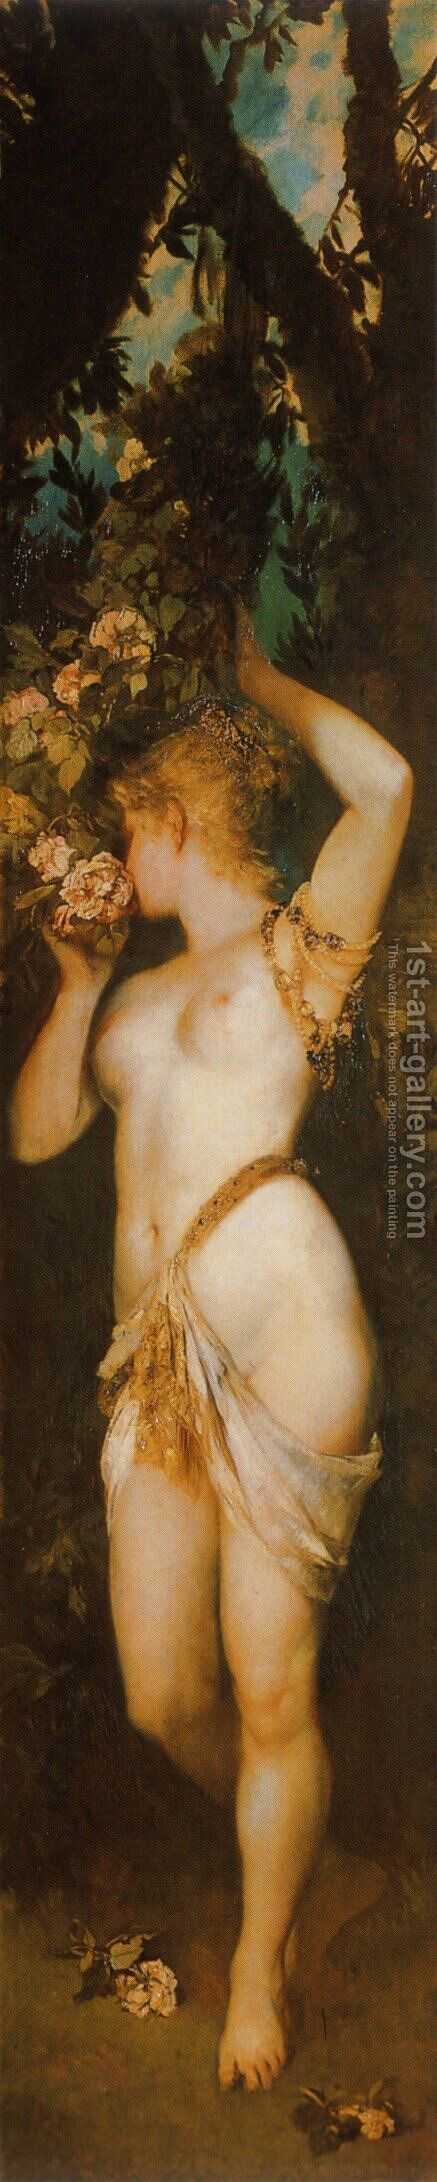 Die Fünf Sinne: Geruch (The Five Senses: Smelling) by Hans Makart - Reproduction Oil Painting